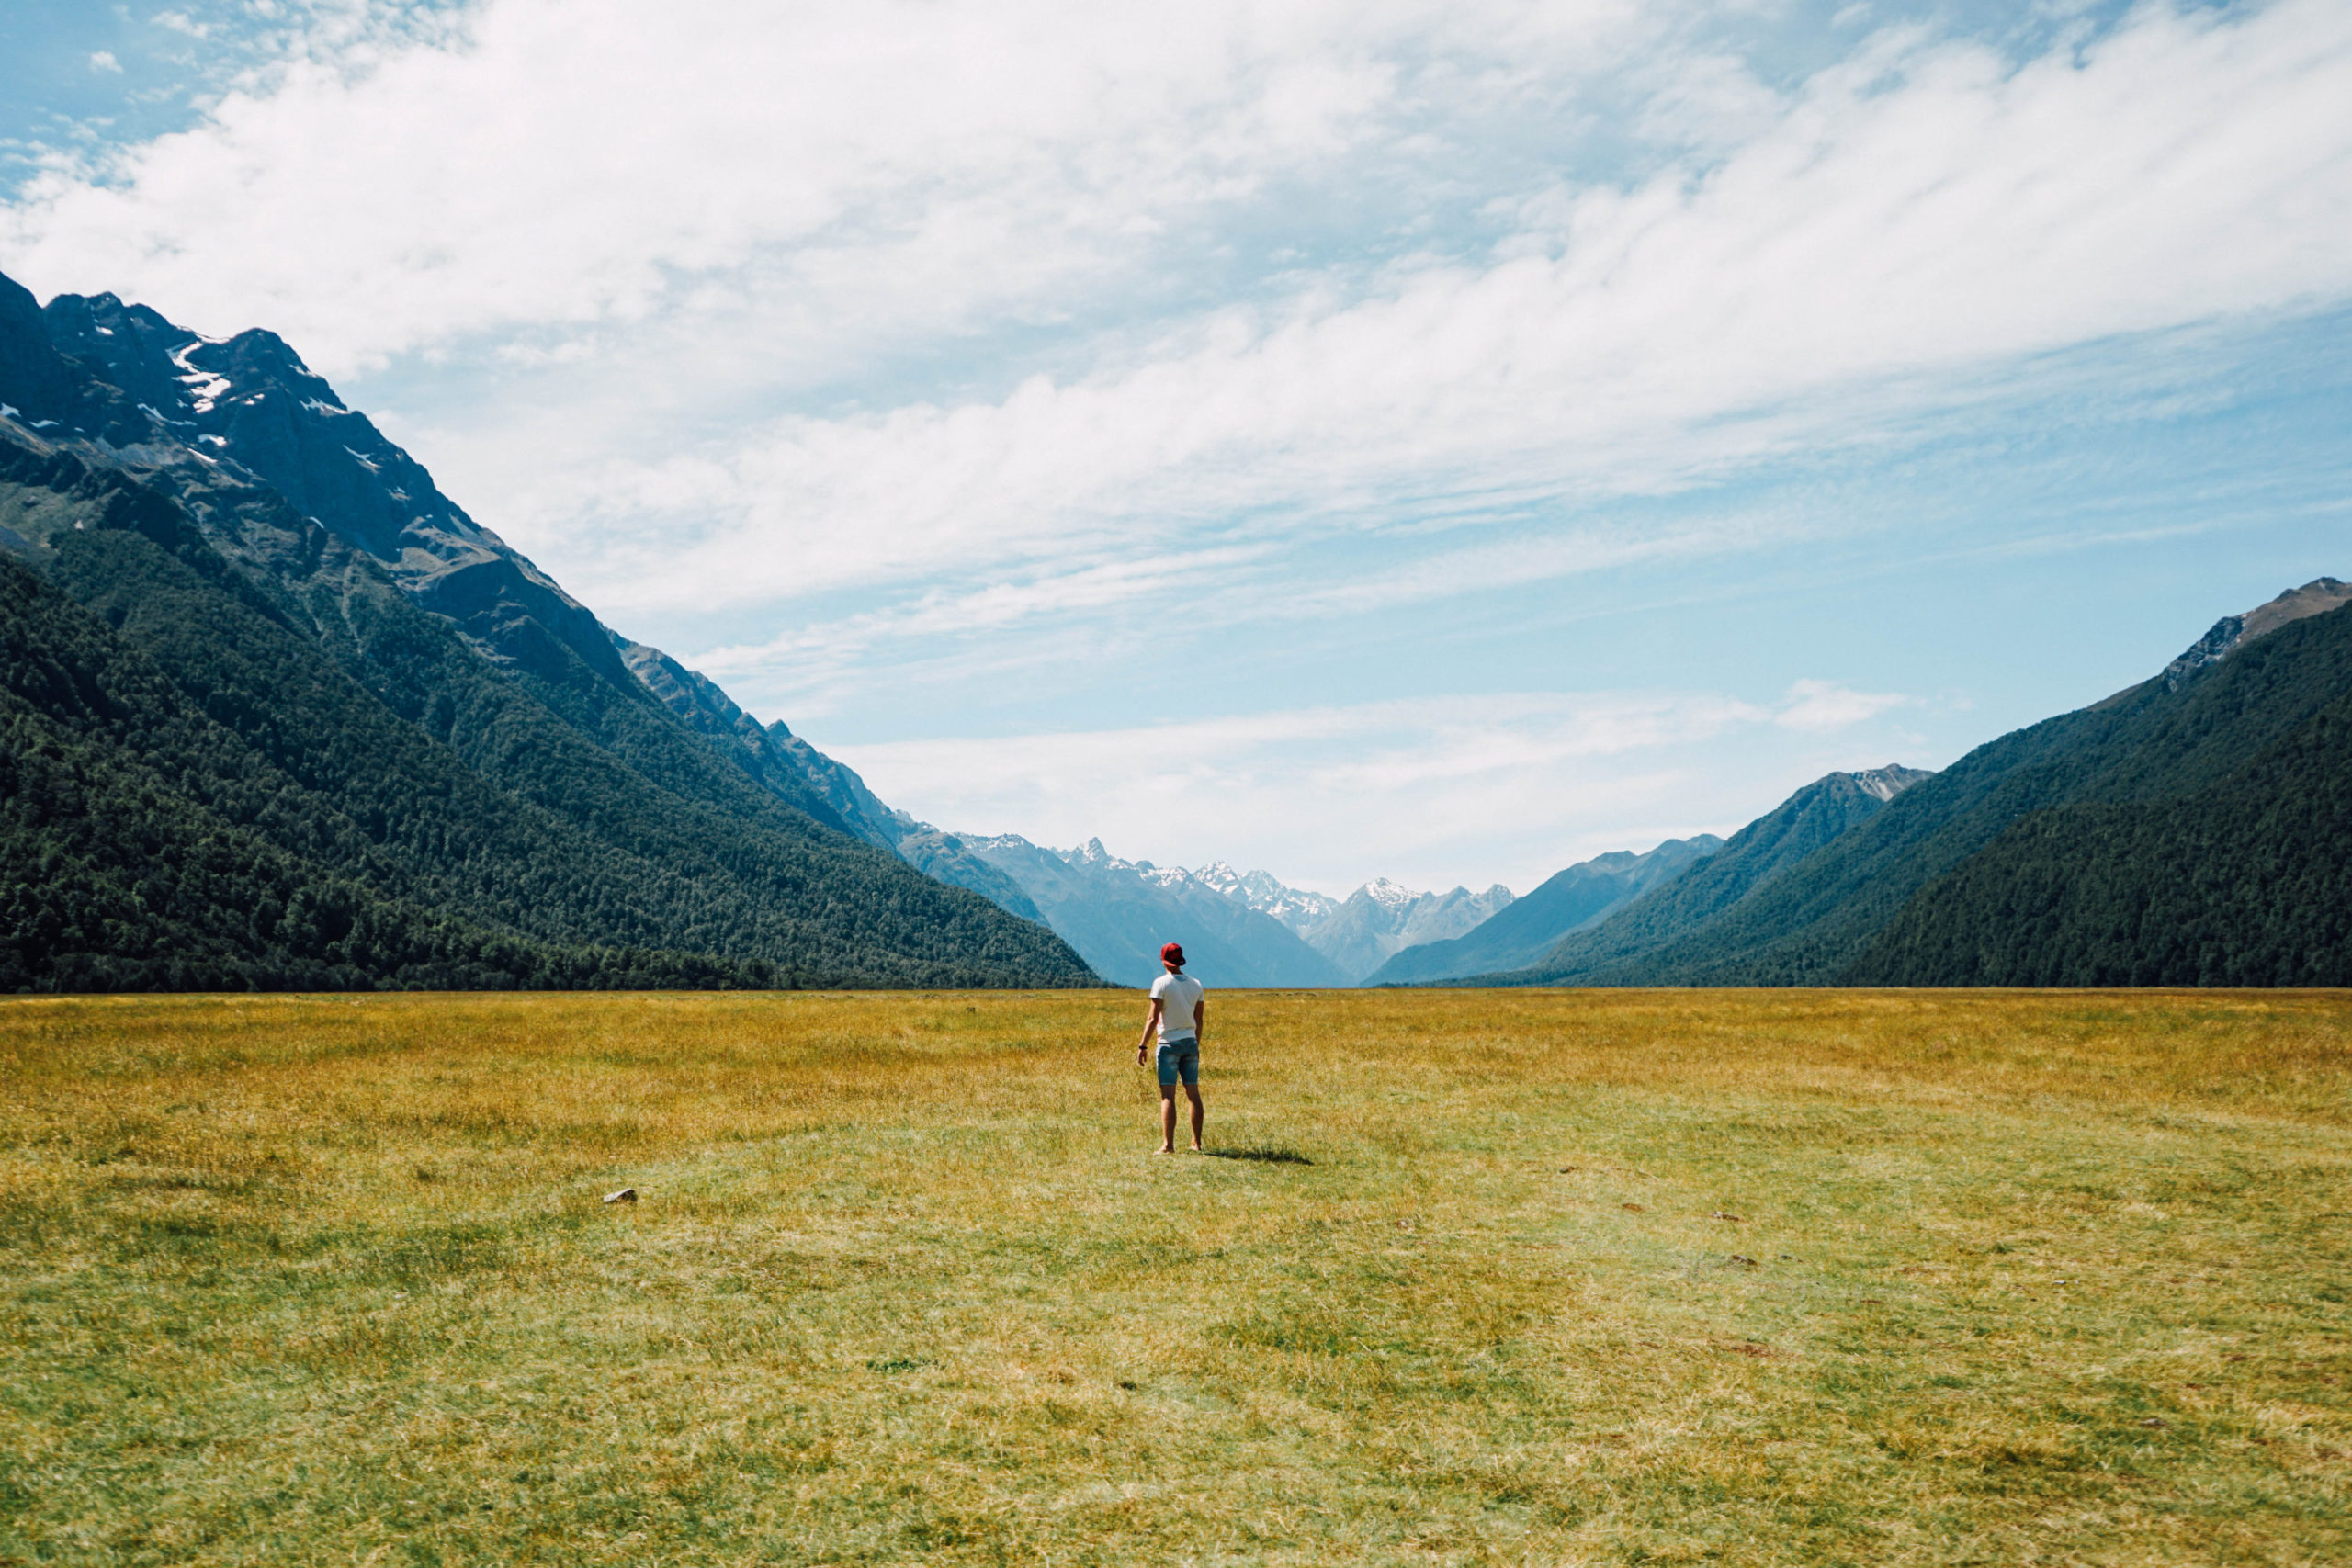 Not only useful for hobbits: The backpackers guide to New Zealand.